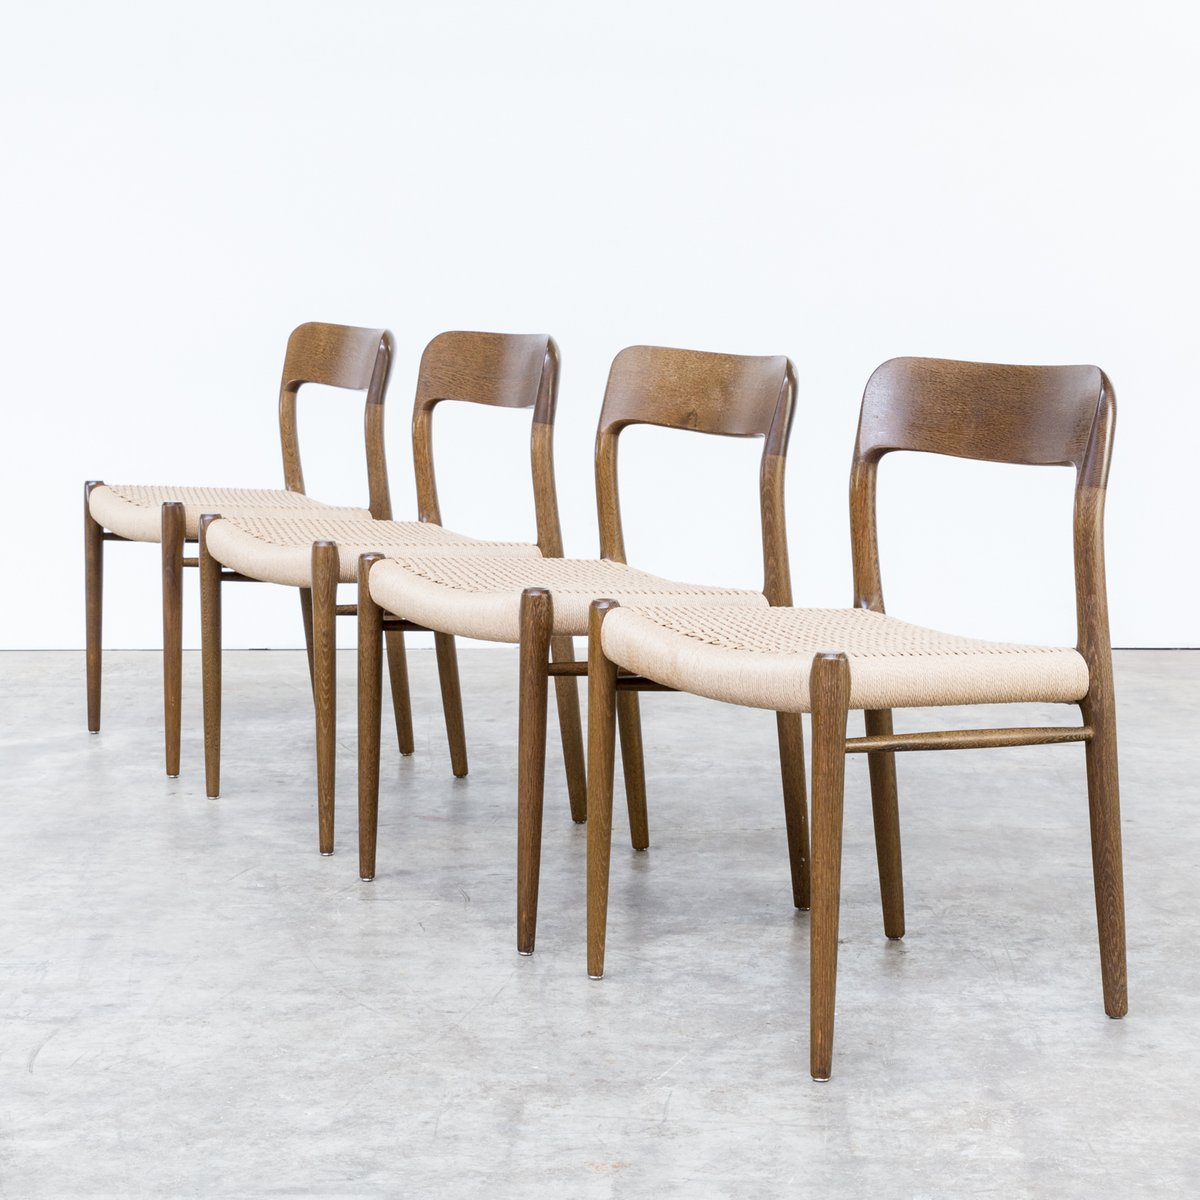 Model 75 Dining Chairs By Niels O. Møller For J.L. Møllers, 1960s, Set Of 4